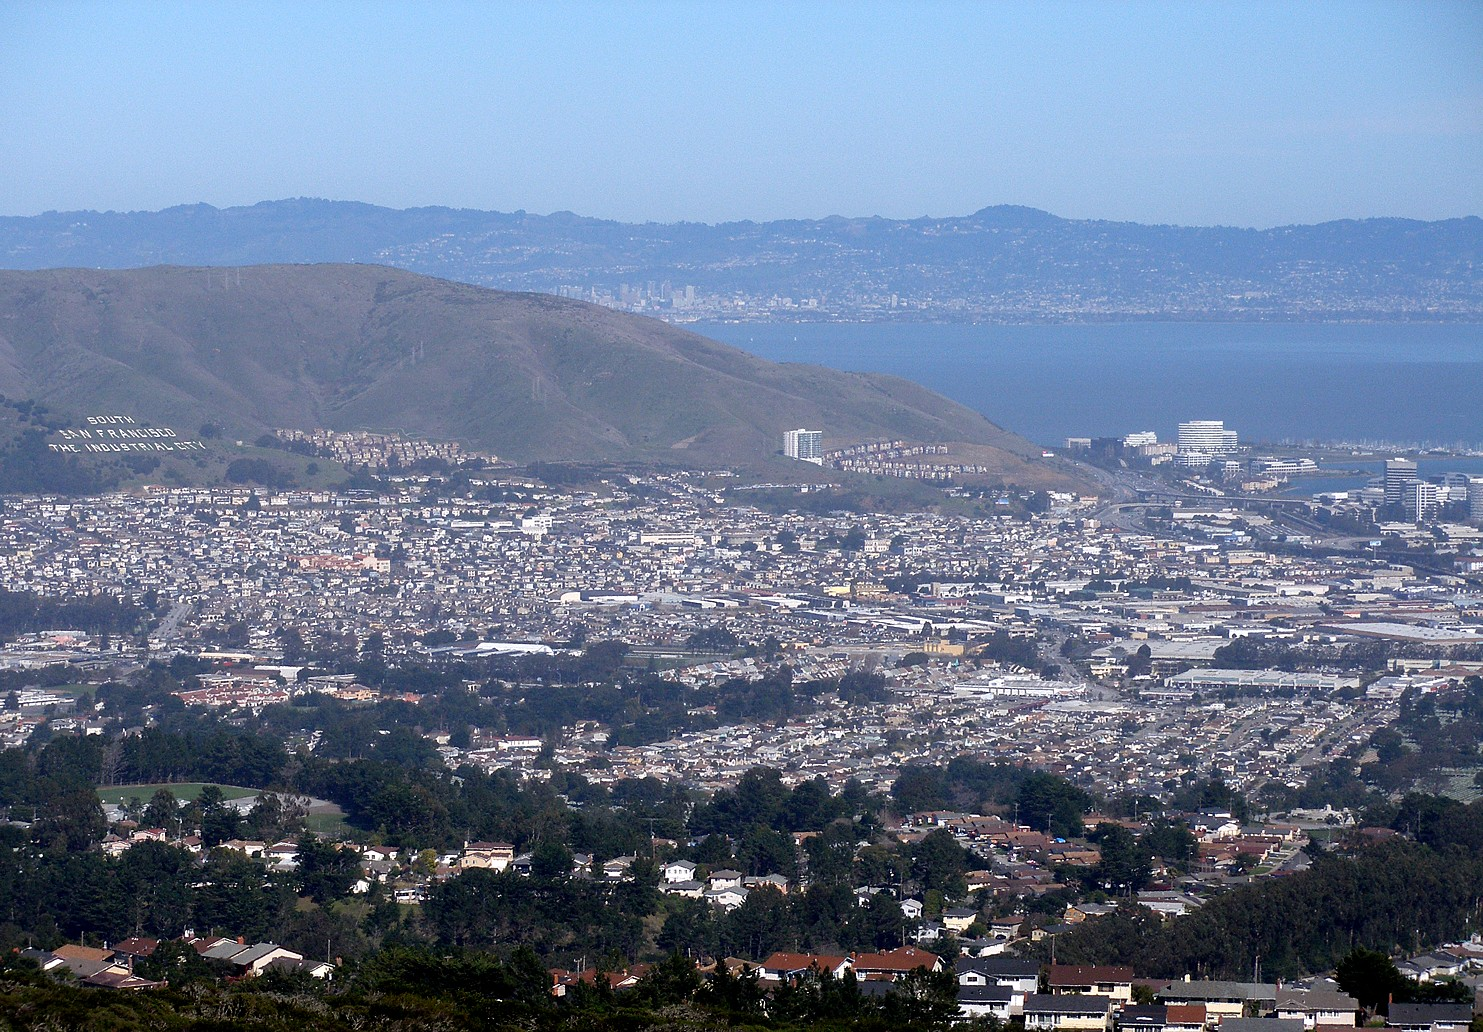 south san francisco, california - wikipedia